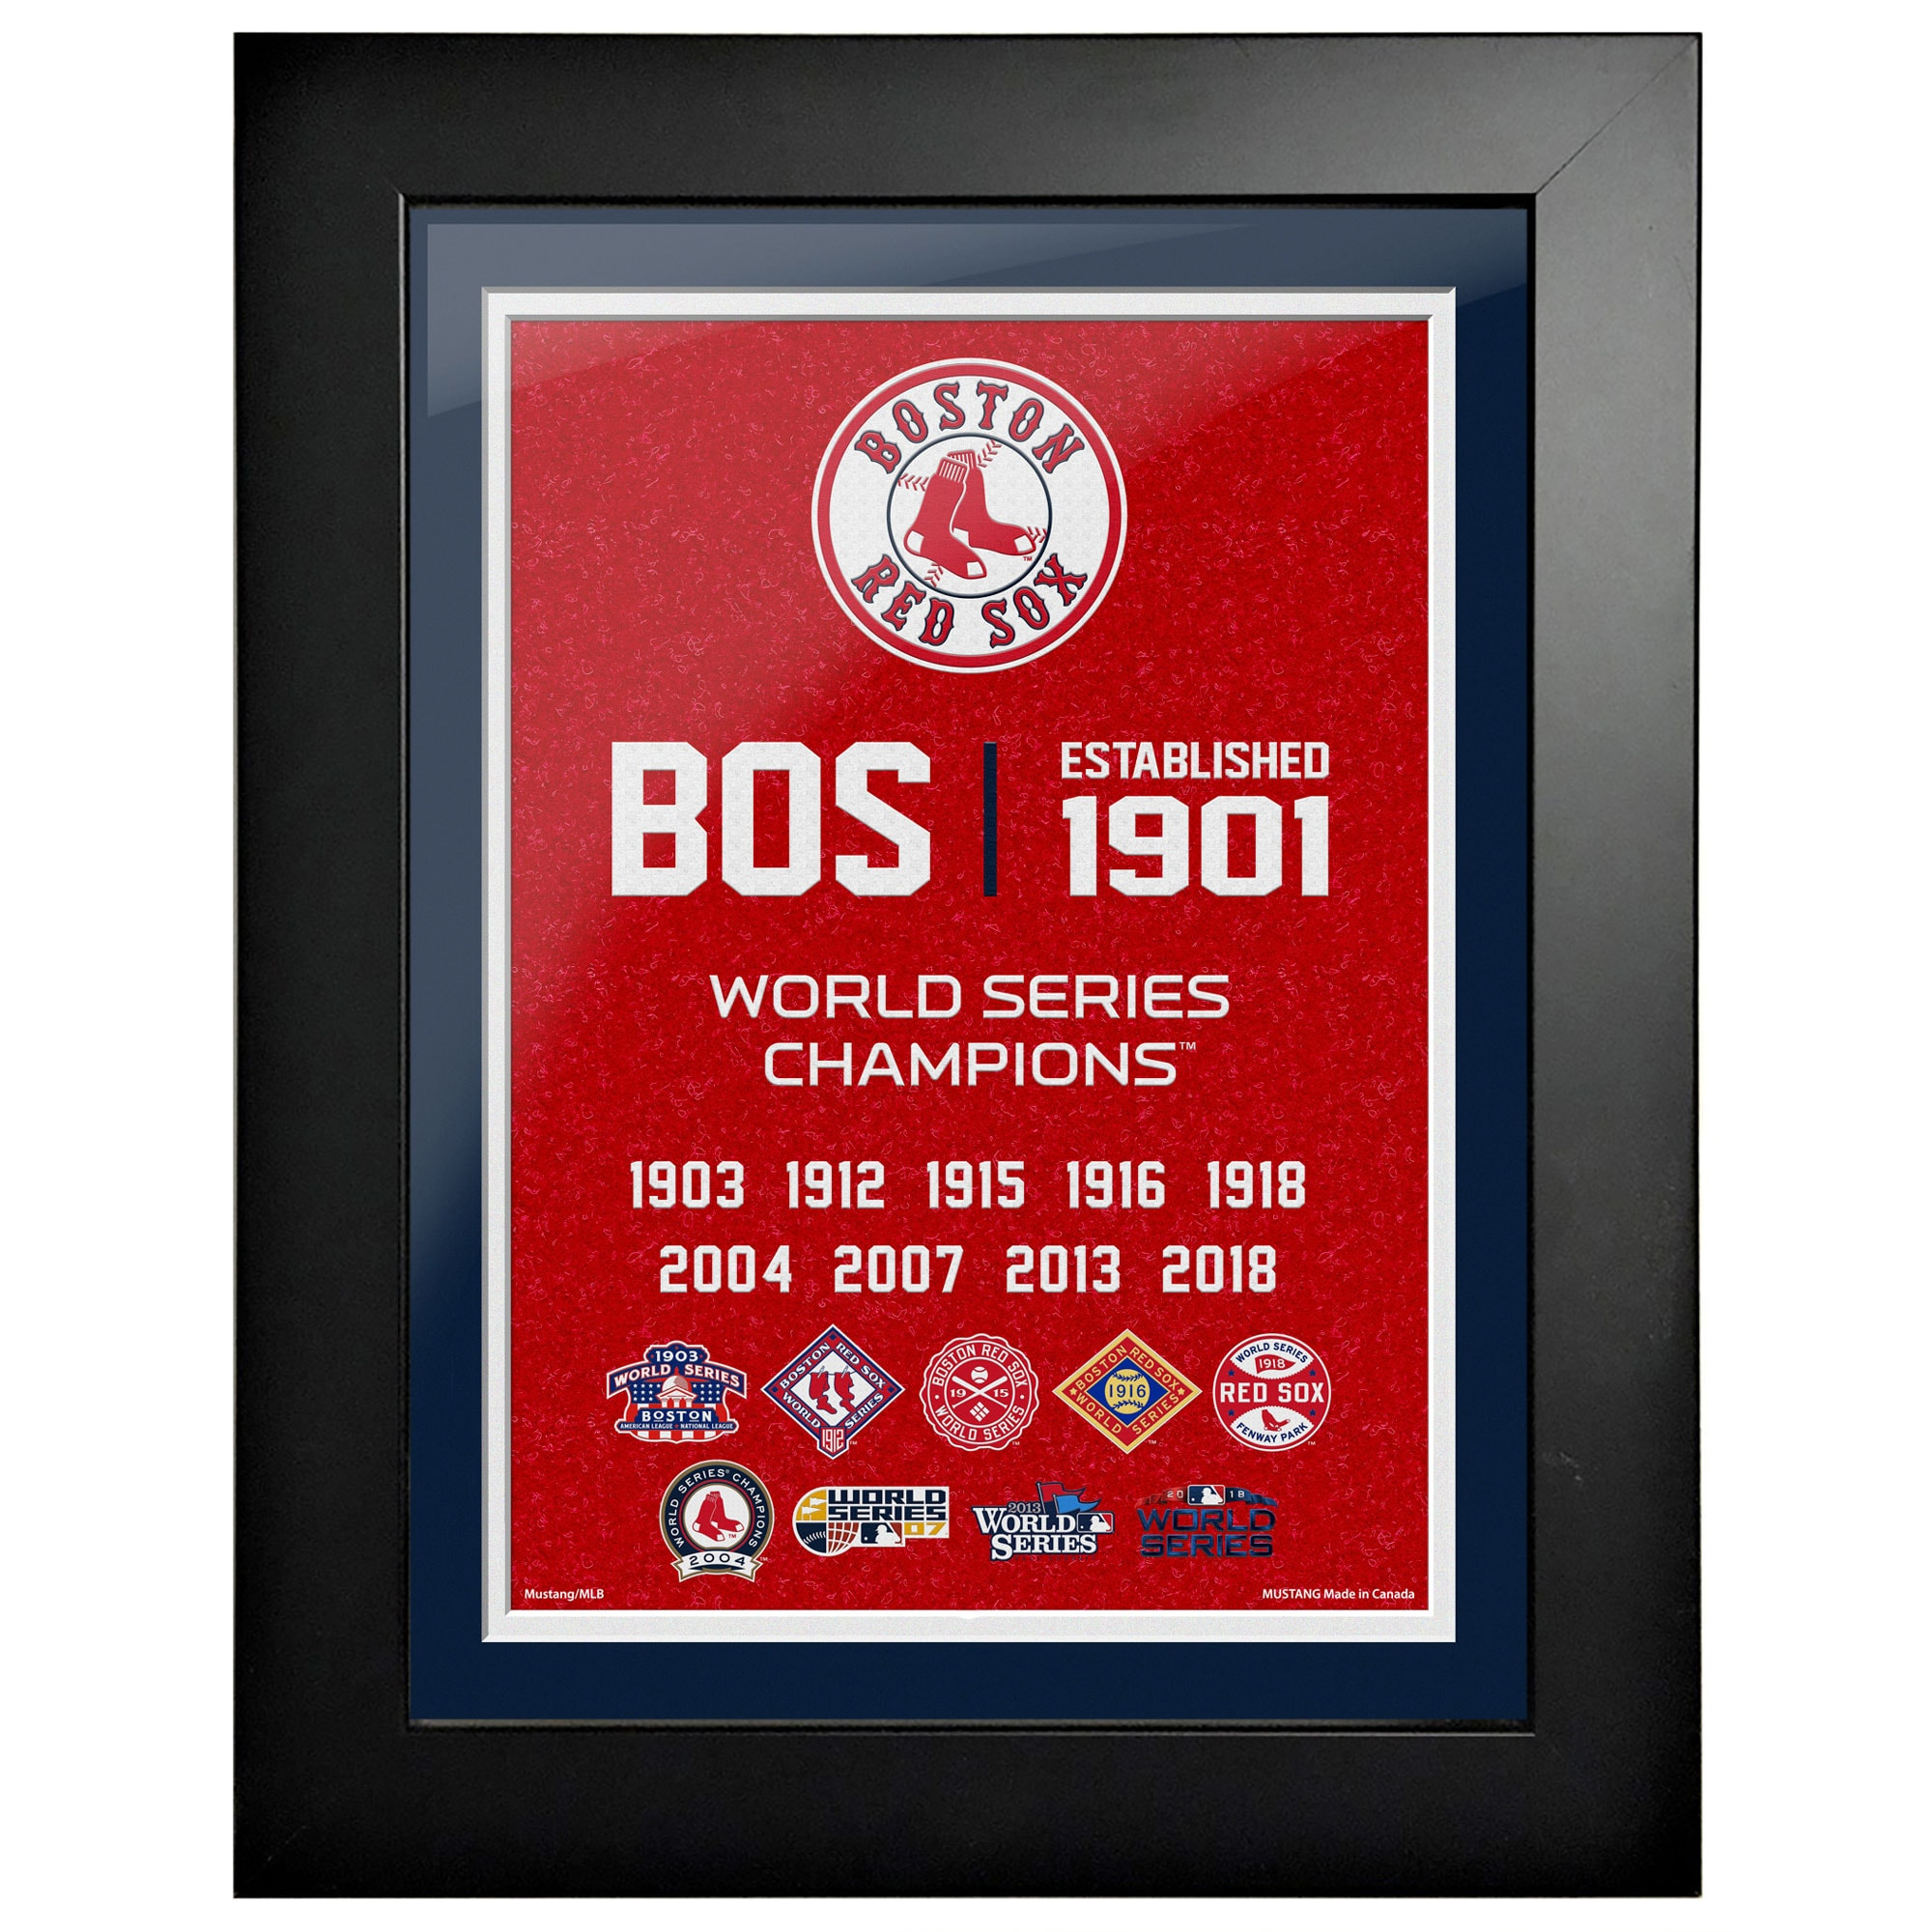 Boston Red Sox 9-Time World Series Champions 18'' x 14'' Empire Framed Art